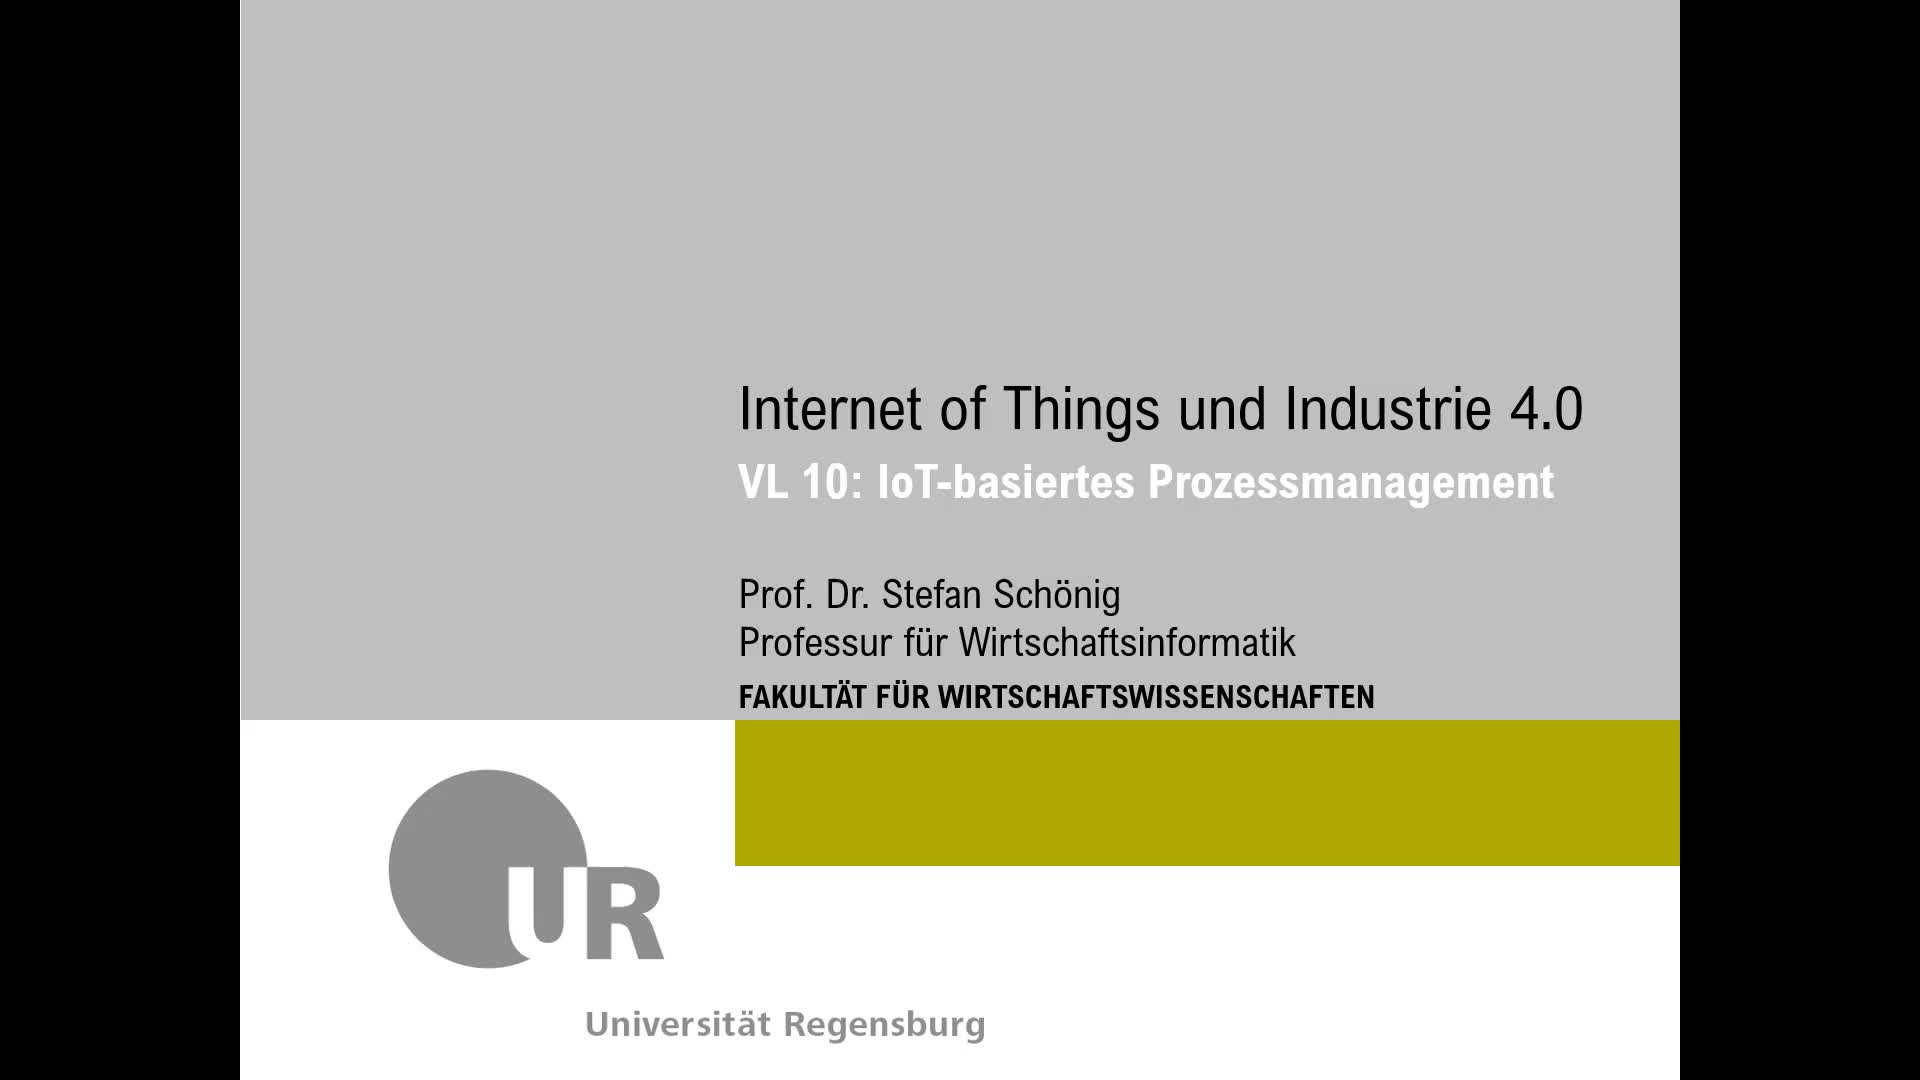 SS 2020 - Internet of Things und Industrie 4.0 - Kapitel 10 (IoT-basiertes Prozessmanagement - BPMN und IoT)